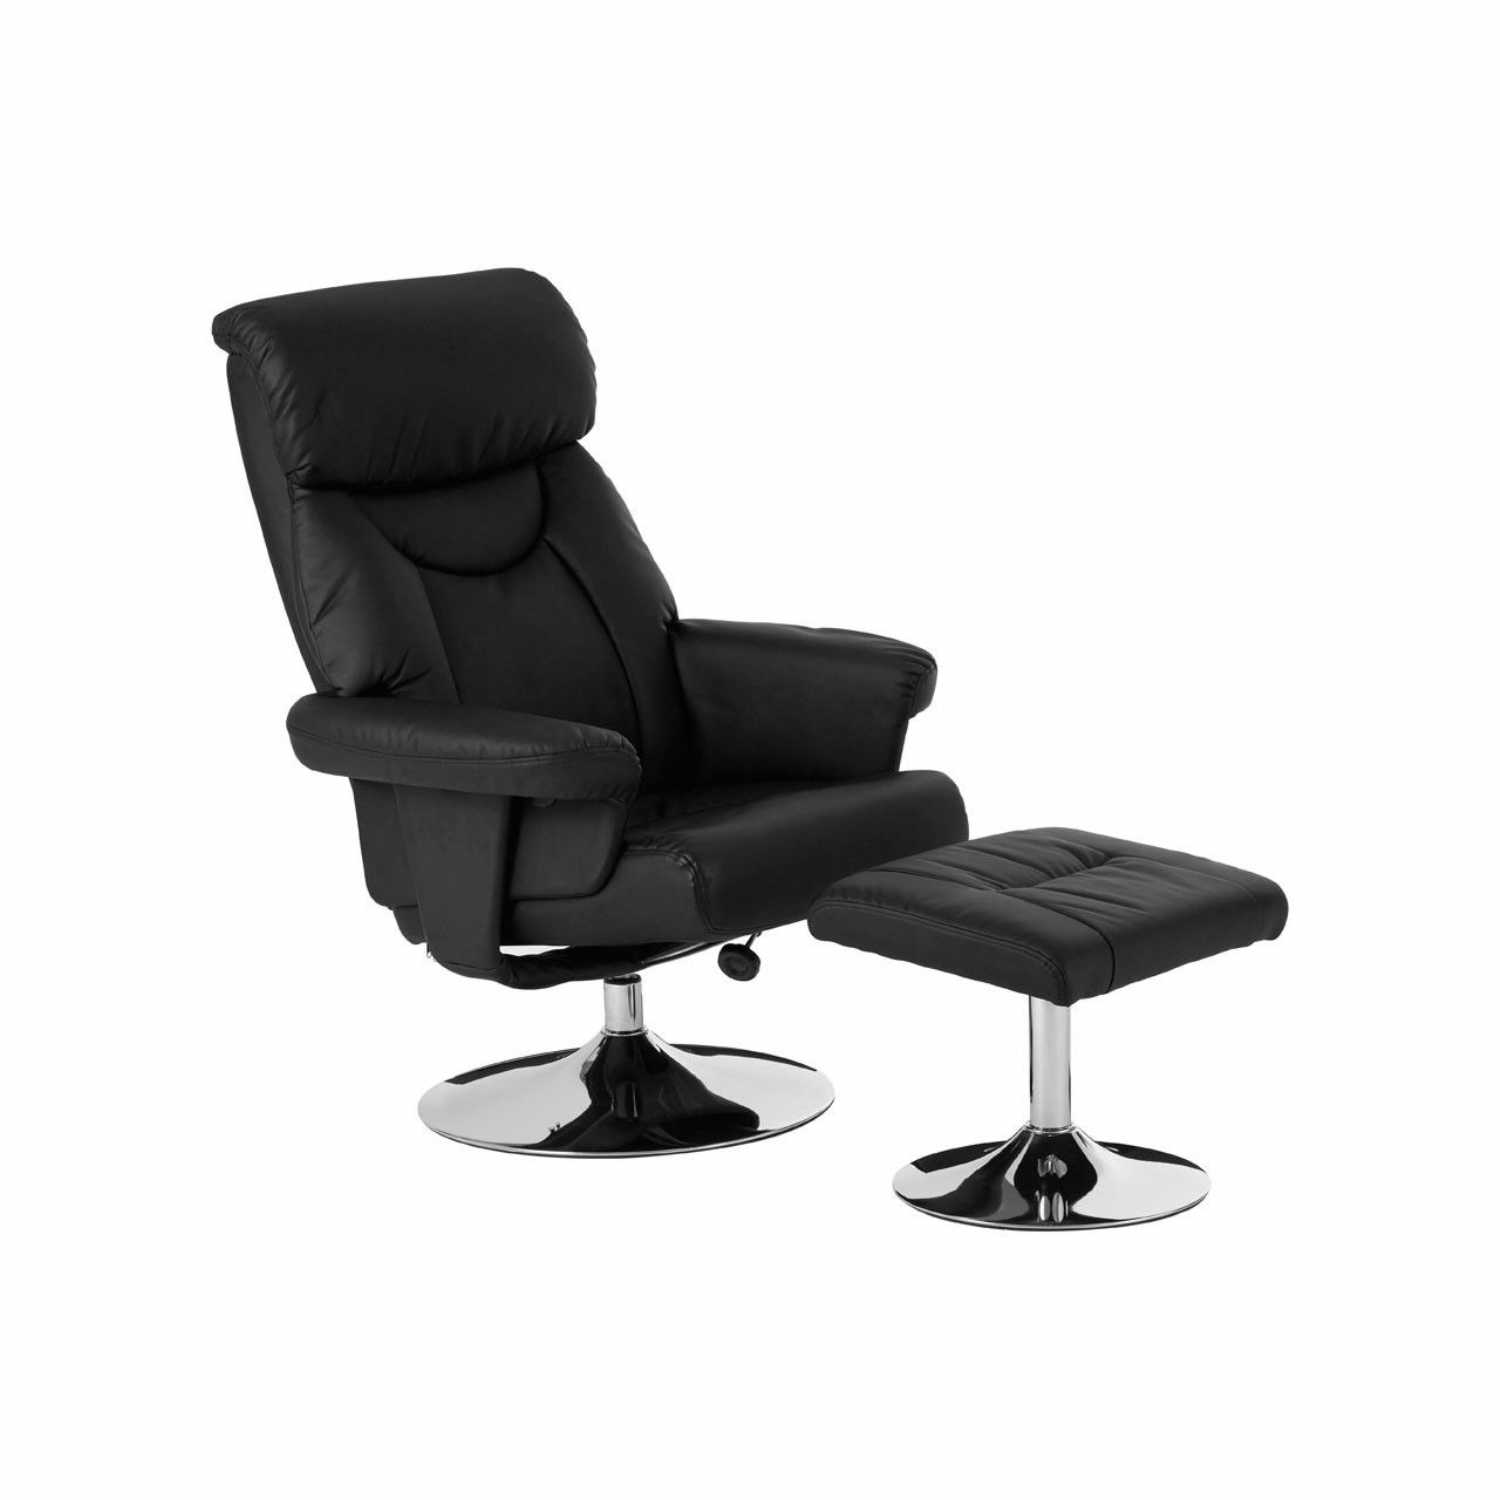 modern black leather recliner chair blue dining chairs effect chrome base